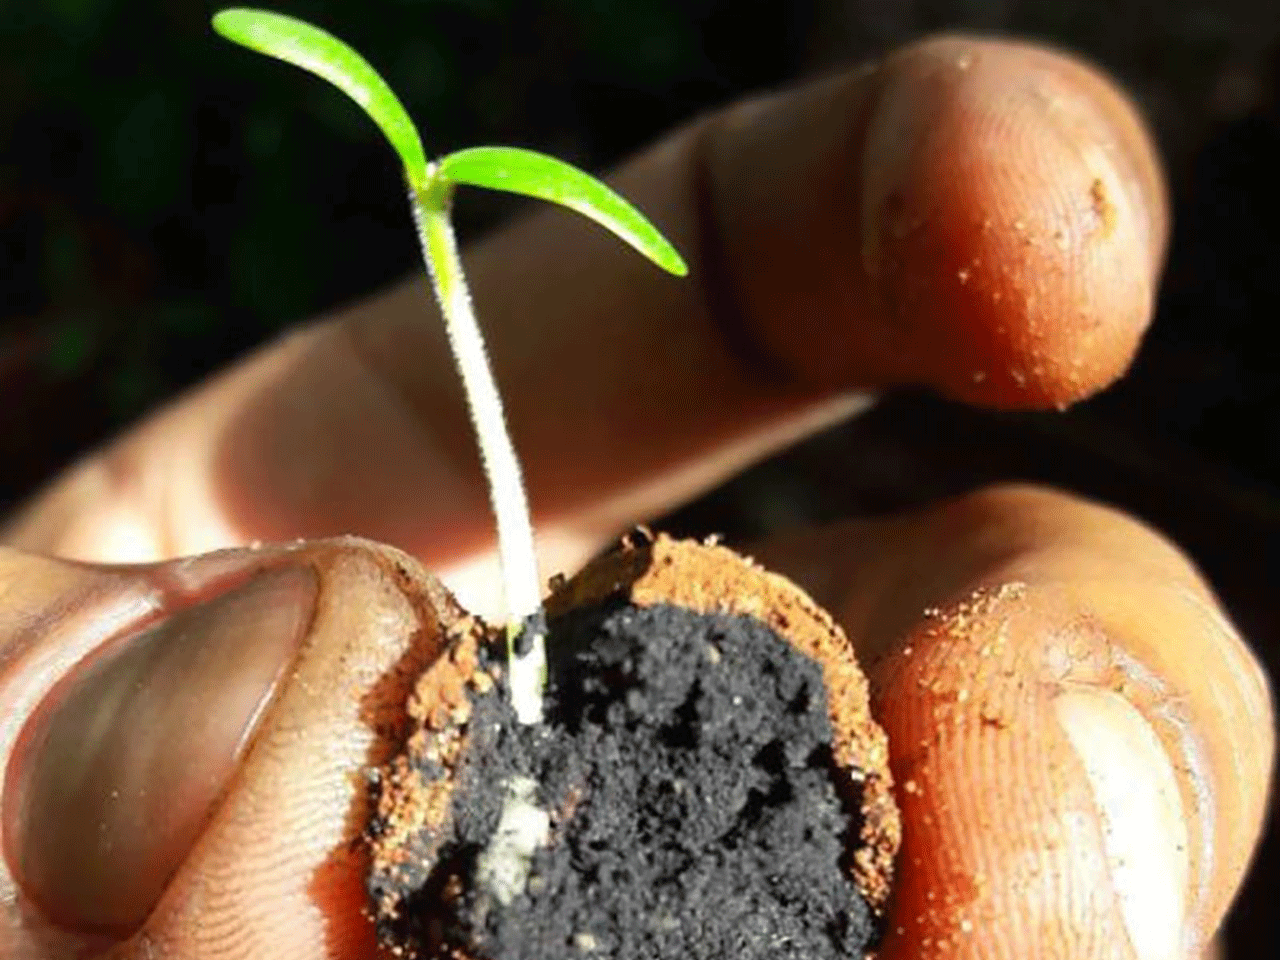 Reforesting Kenya From the Sky with Seedballs